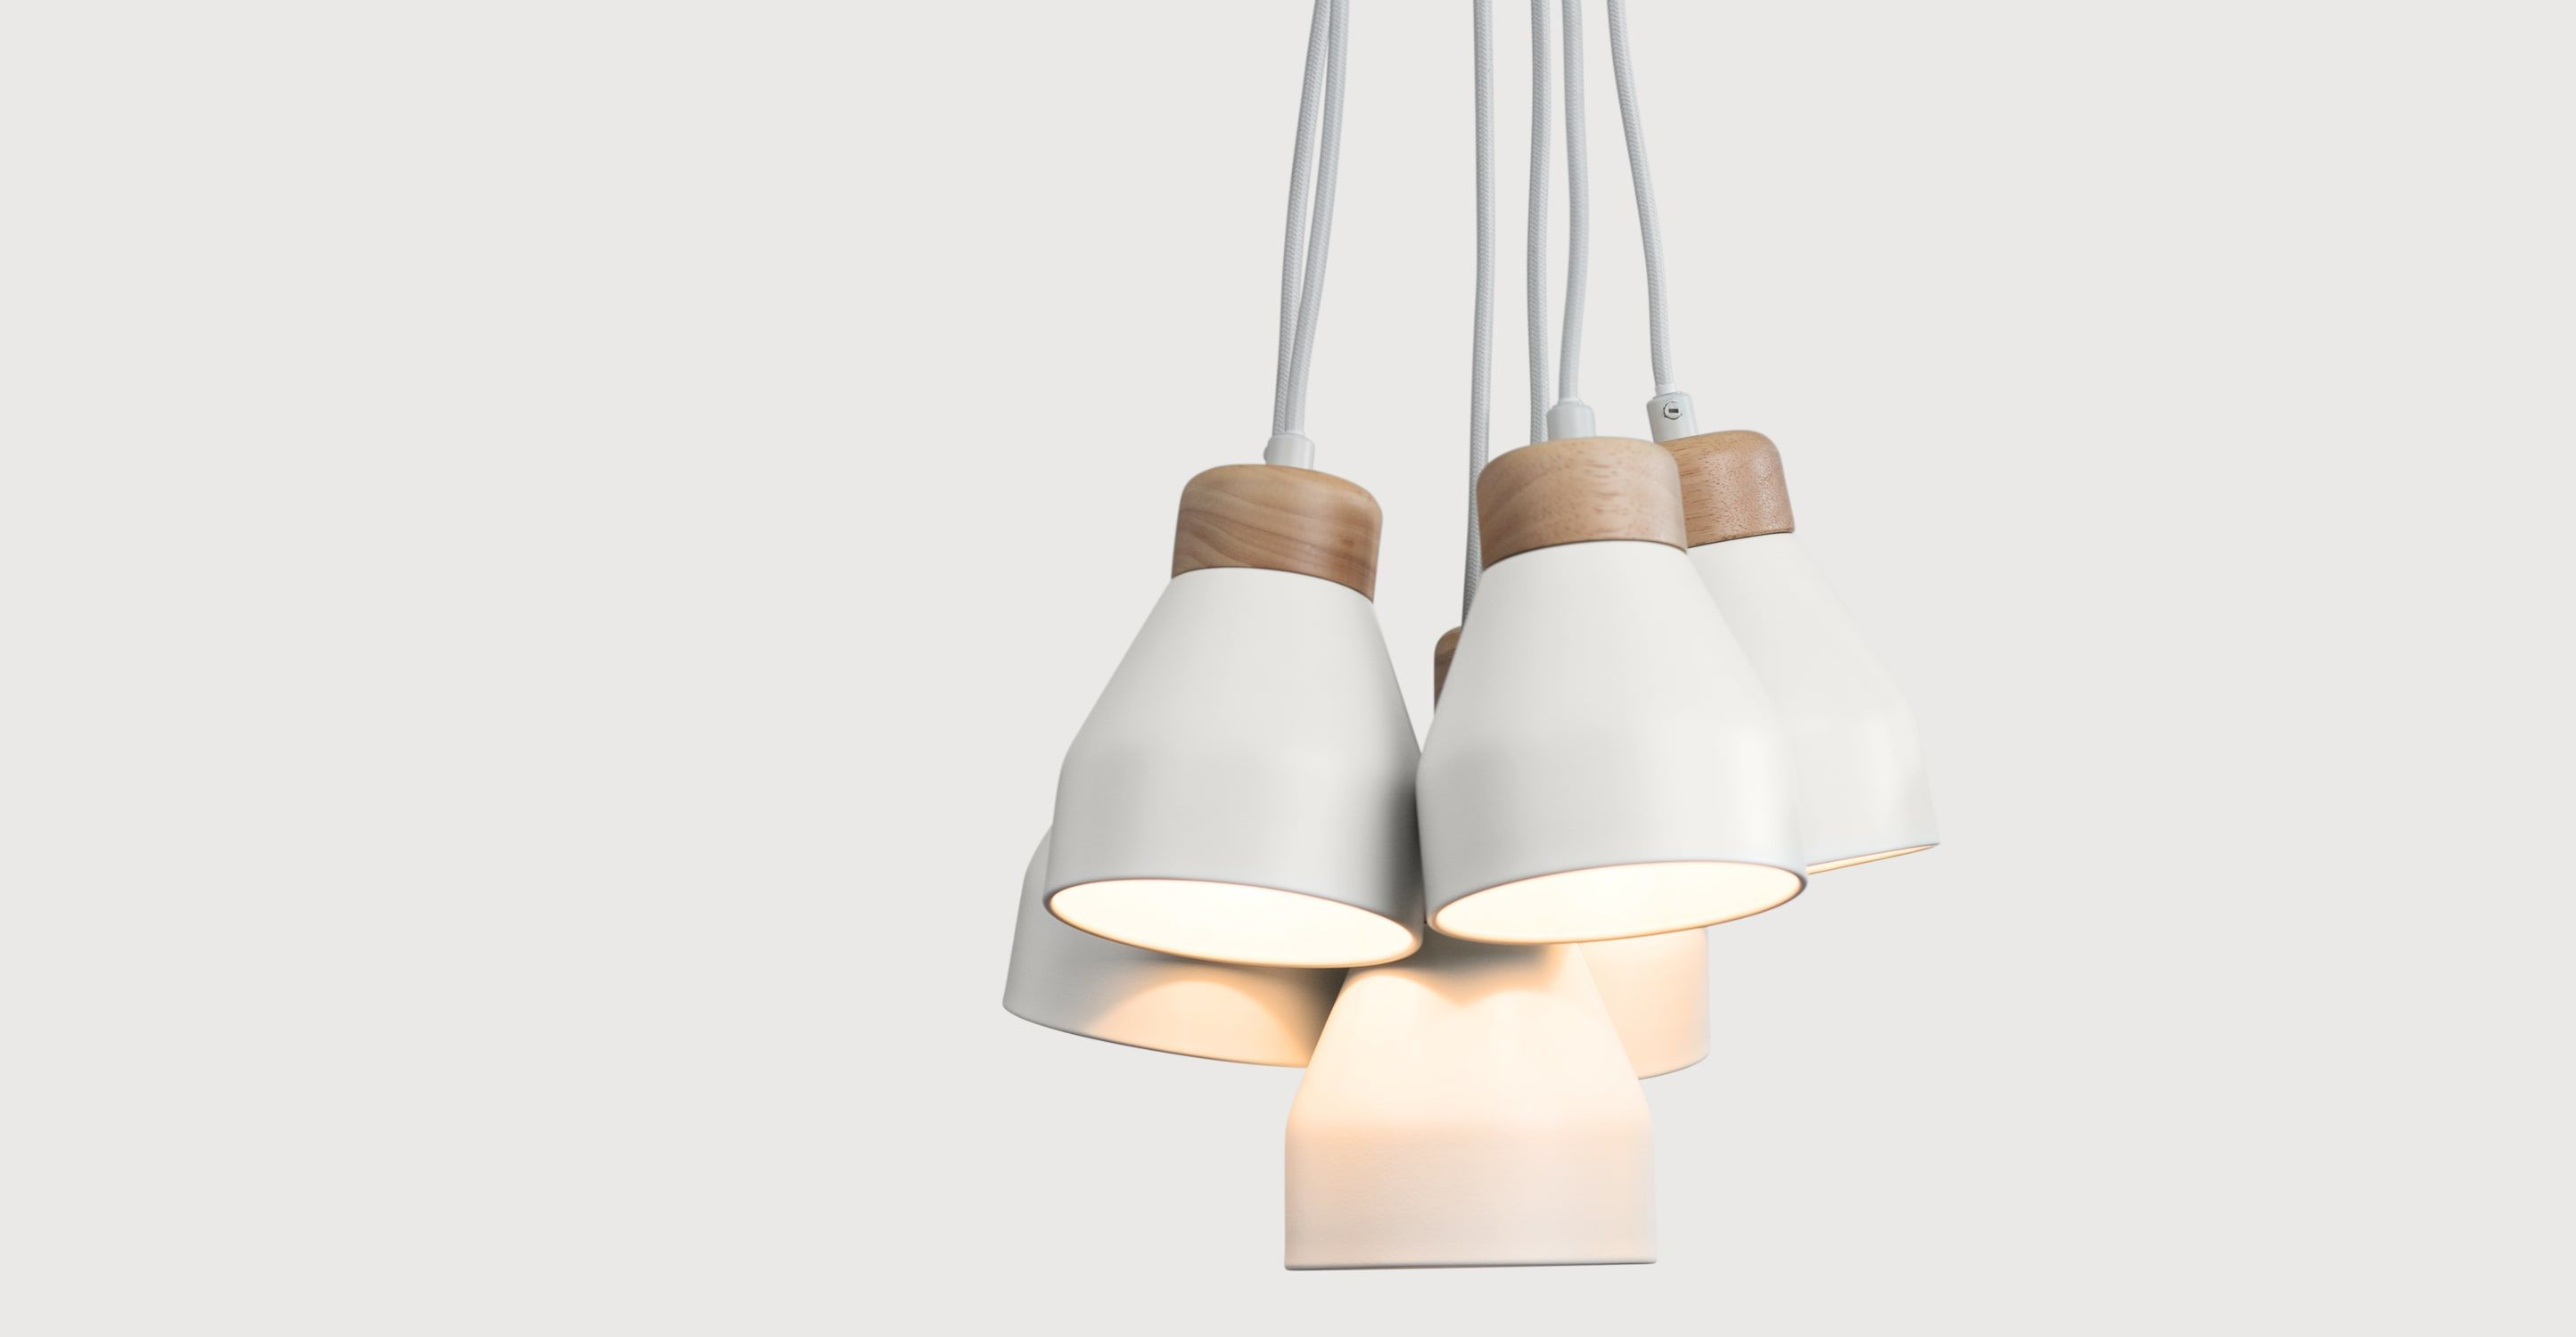 Made cluster pendant lamp muted grey express delivery wood